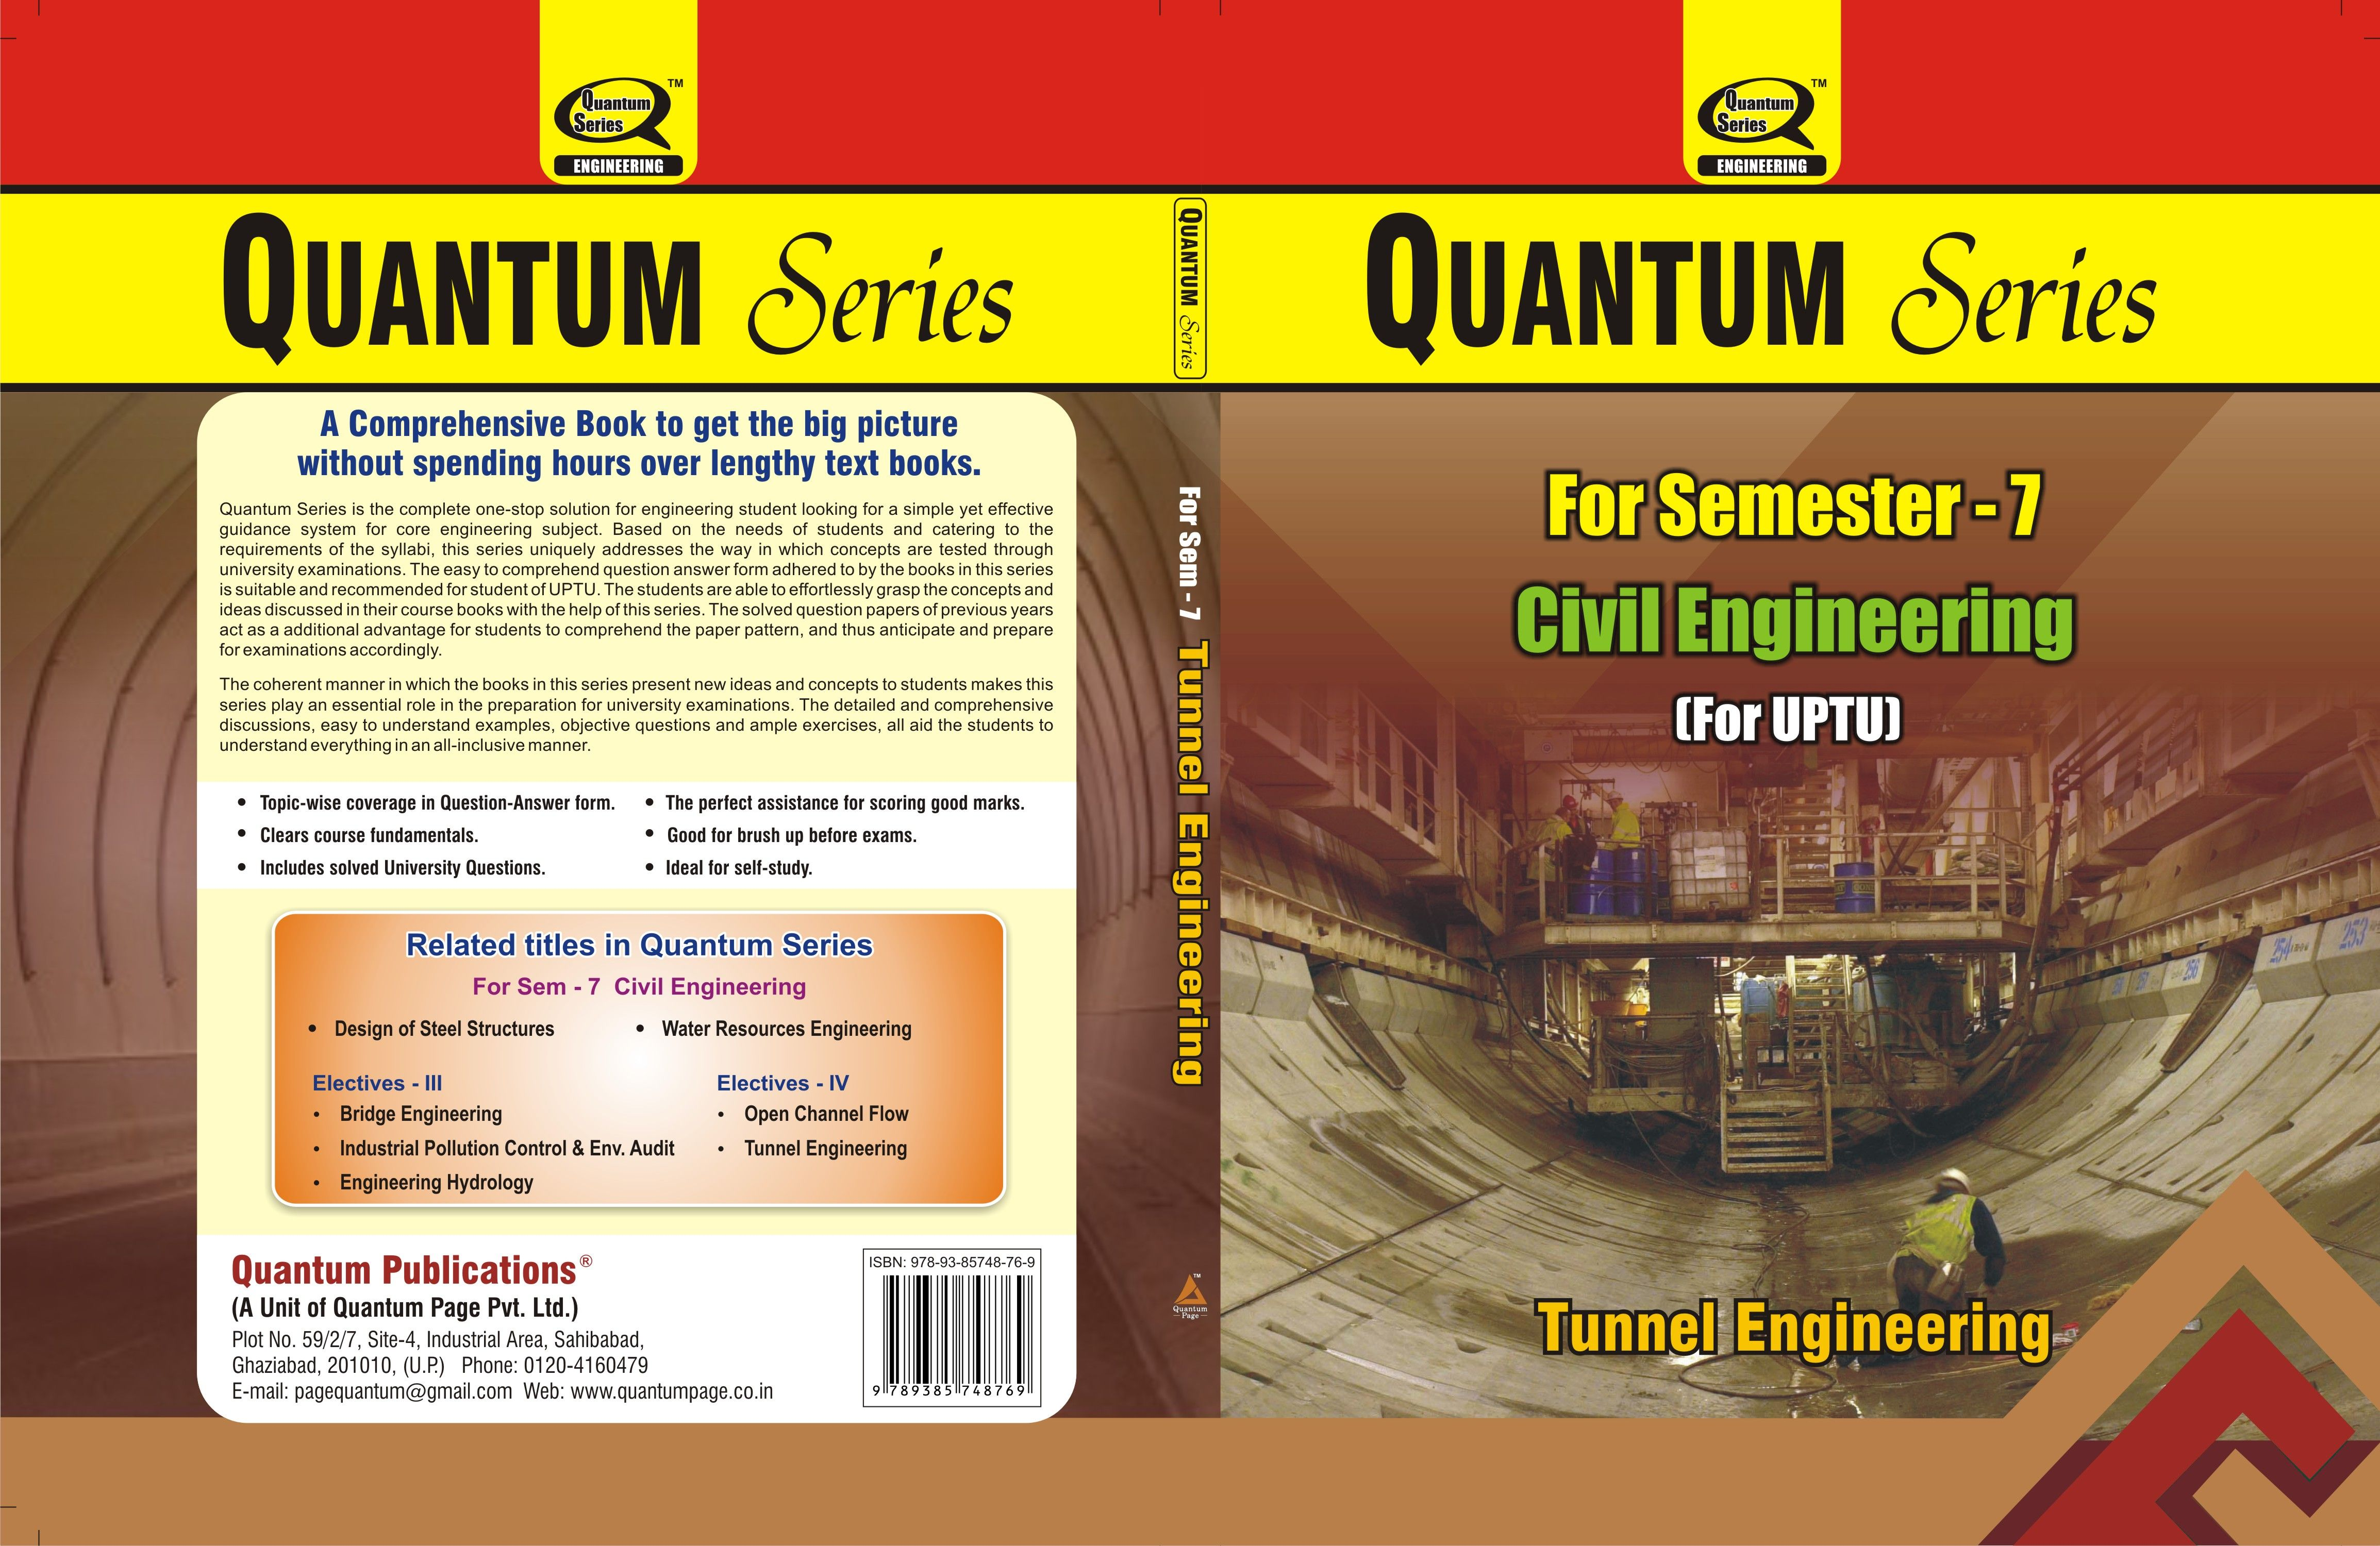 Quantum Series is the complete one-stop solution for ‪UPTU‬ Engineering ‪‎students‬ looking for a simple yet effective guidance system for core ‪engineering‬ subject.